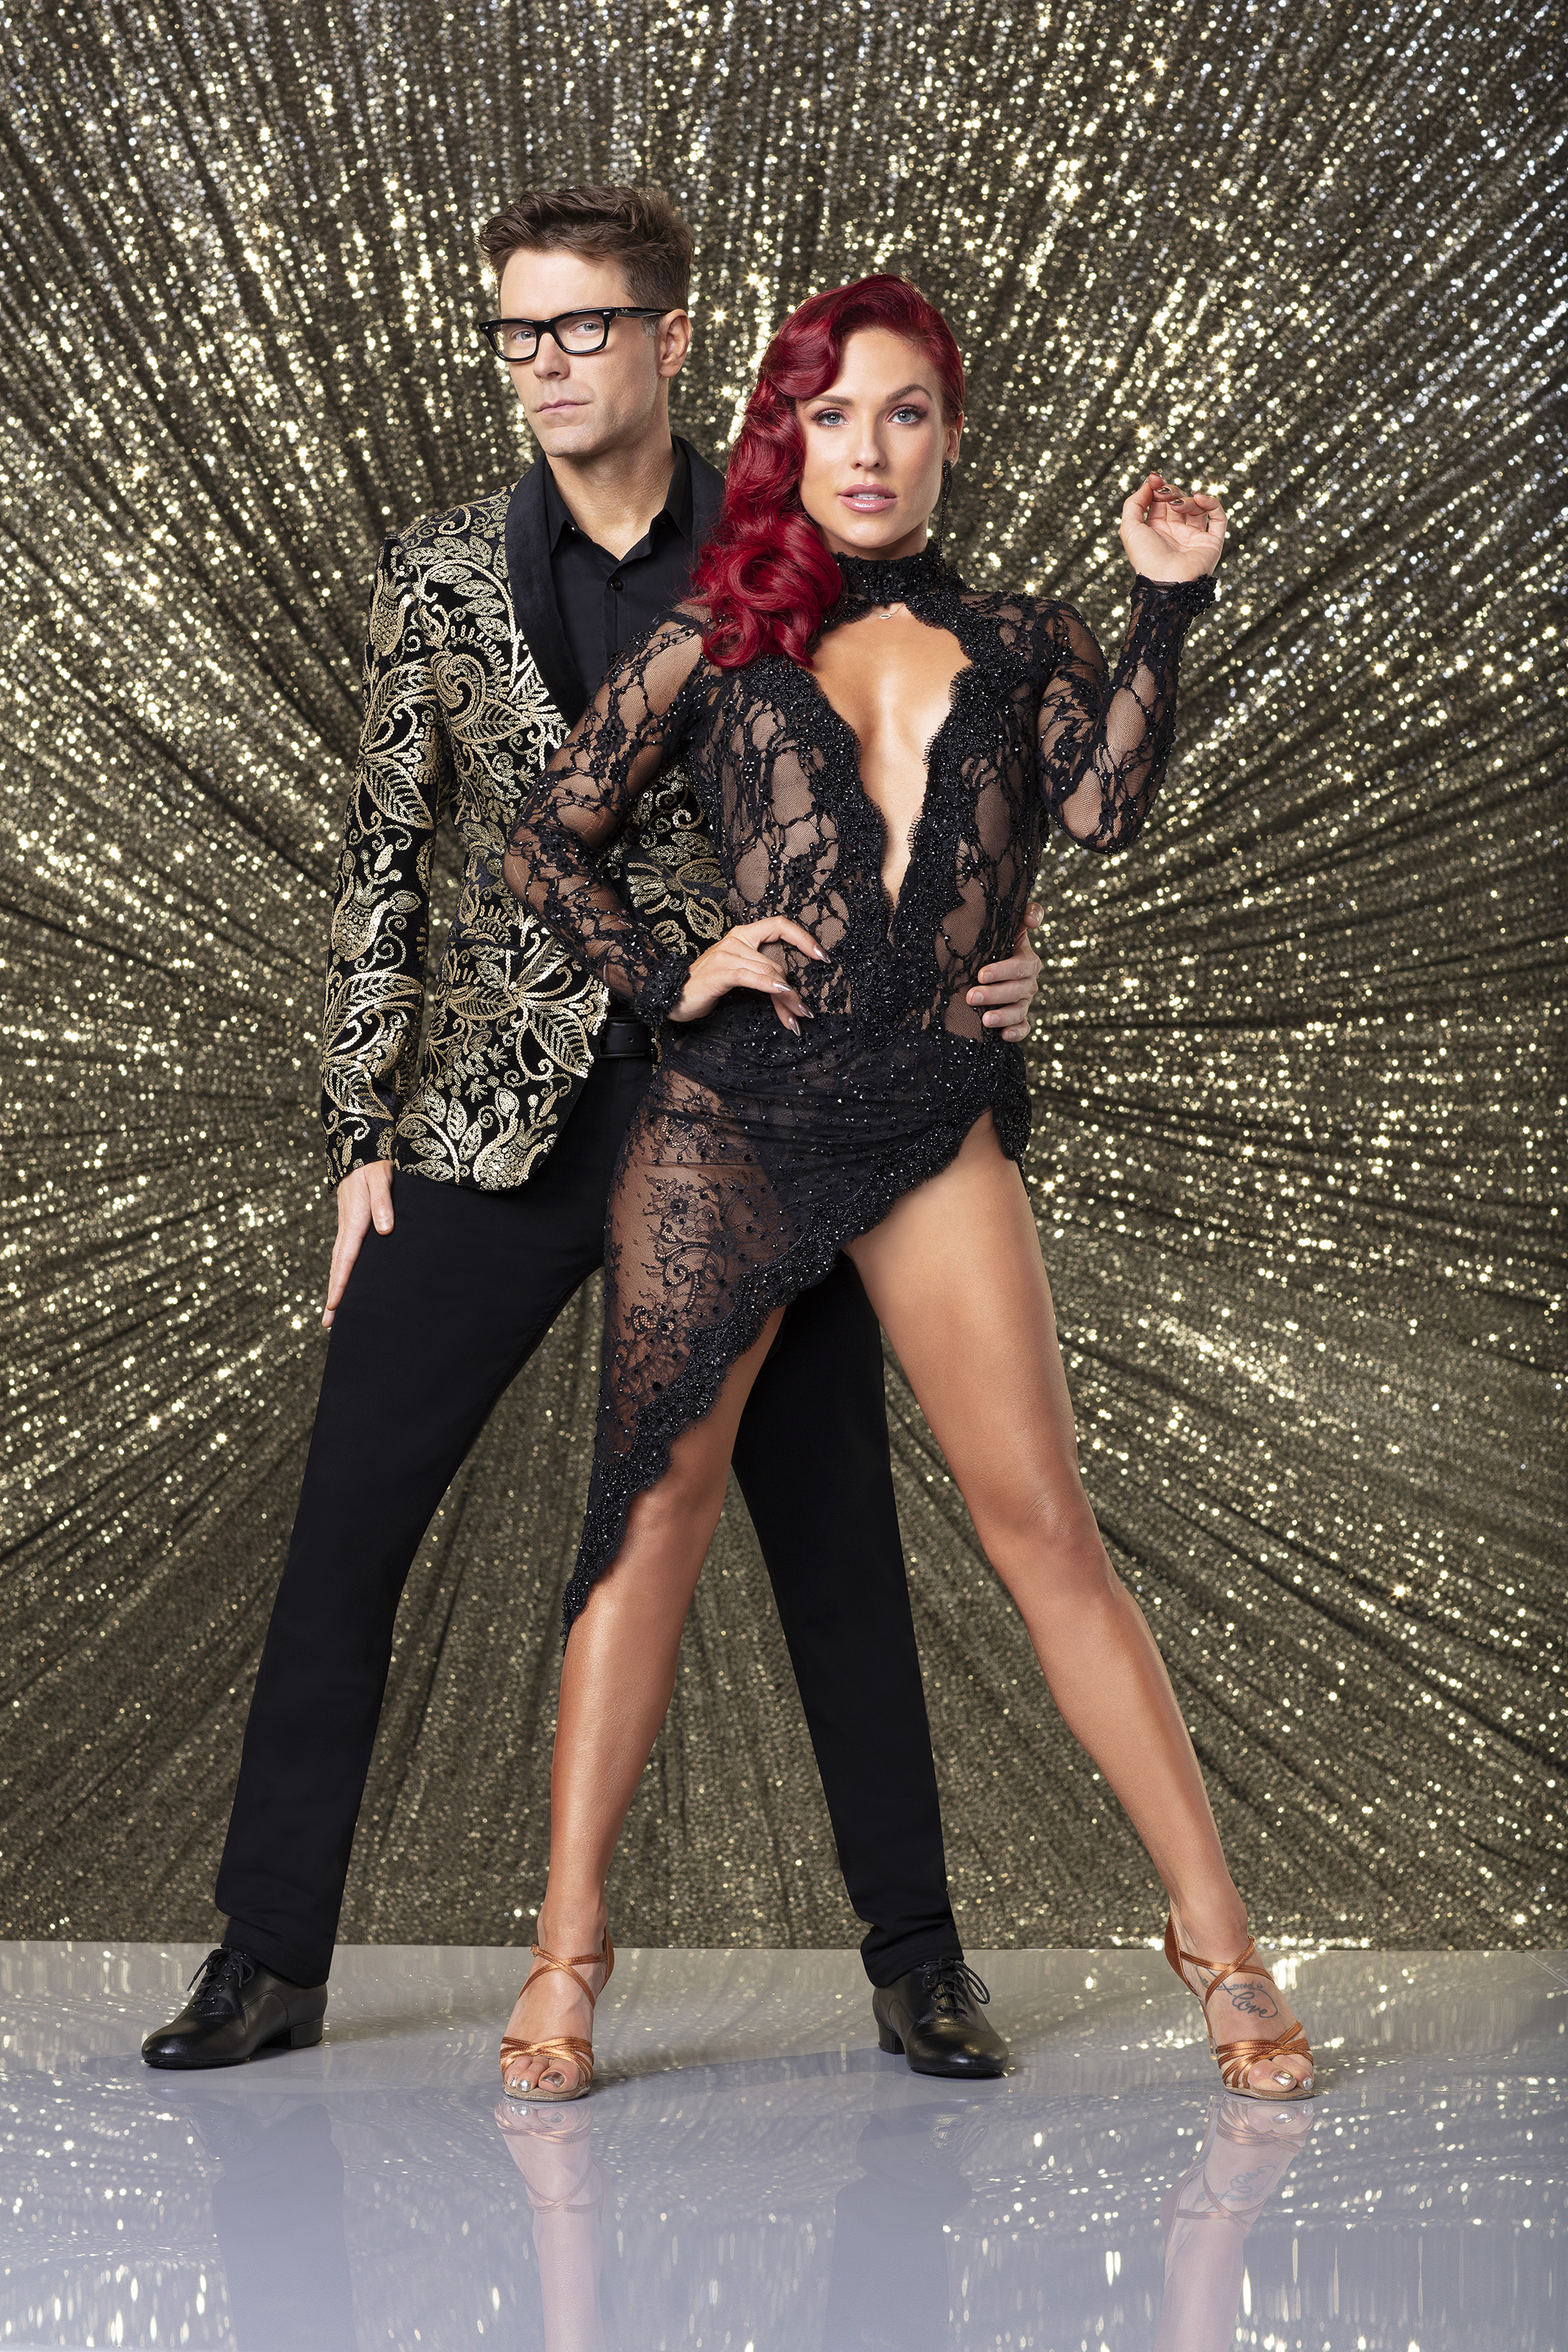 Dancing with the stars season 27 cast revealed dancing with the stars she recently campaigned with calvin klein and tommy hilfiger and was on the cover of maxims august 2017 edition recently she received the acclamation of m4hsunfo